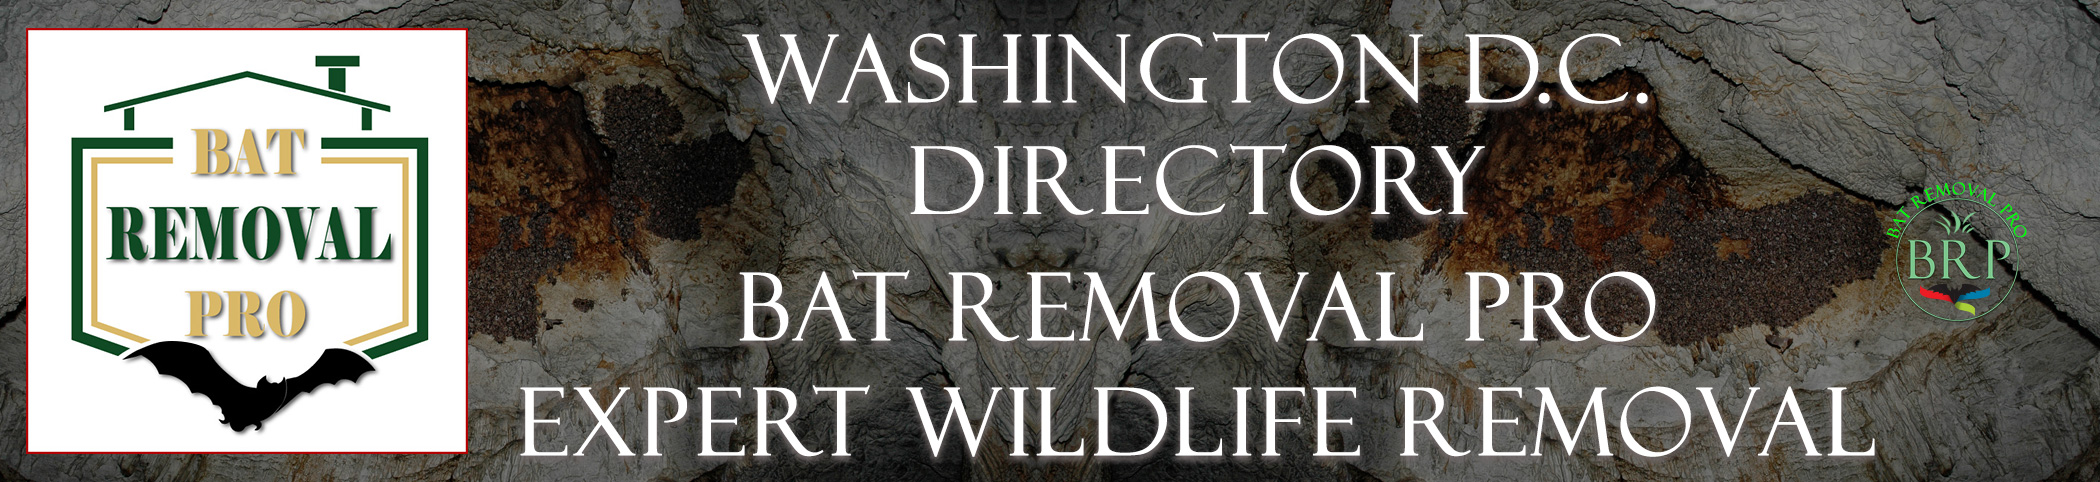 WASHINGTON-DC--bat-removal-at-bat-removal-pro-header-image